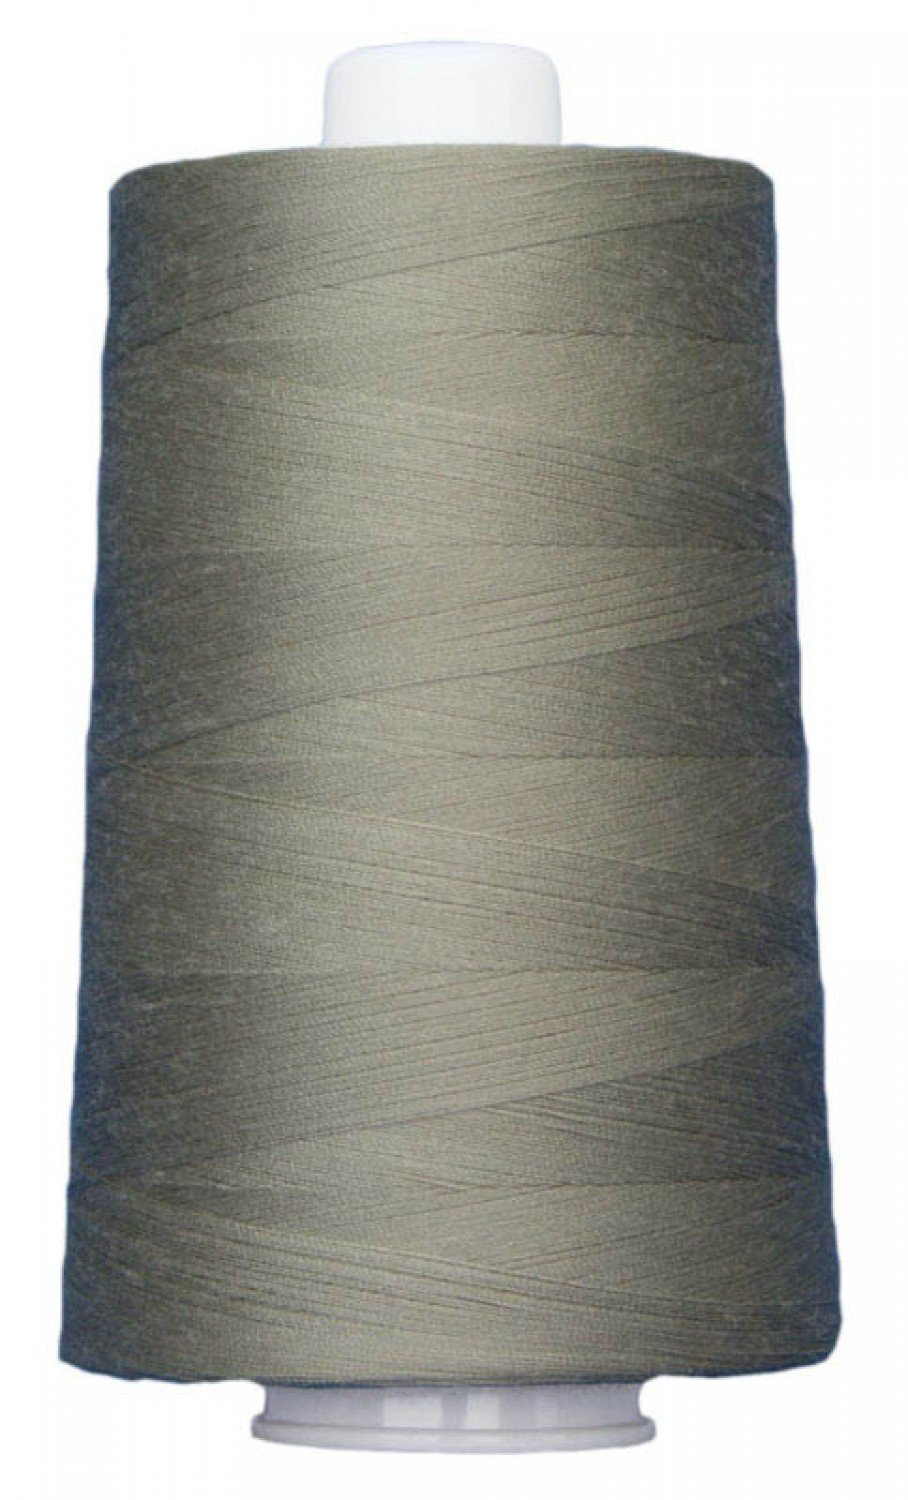 OMNI Polyester Thread 40 wt 6000 yds 3019 Goose by Superior